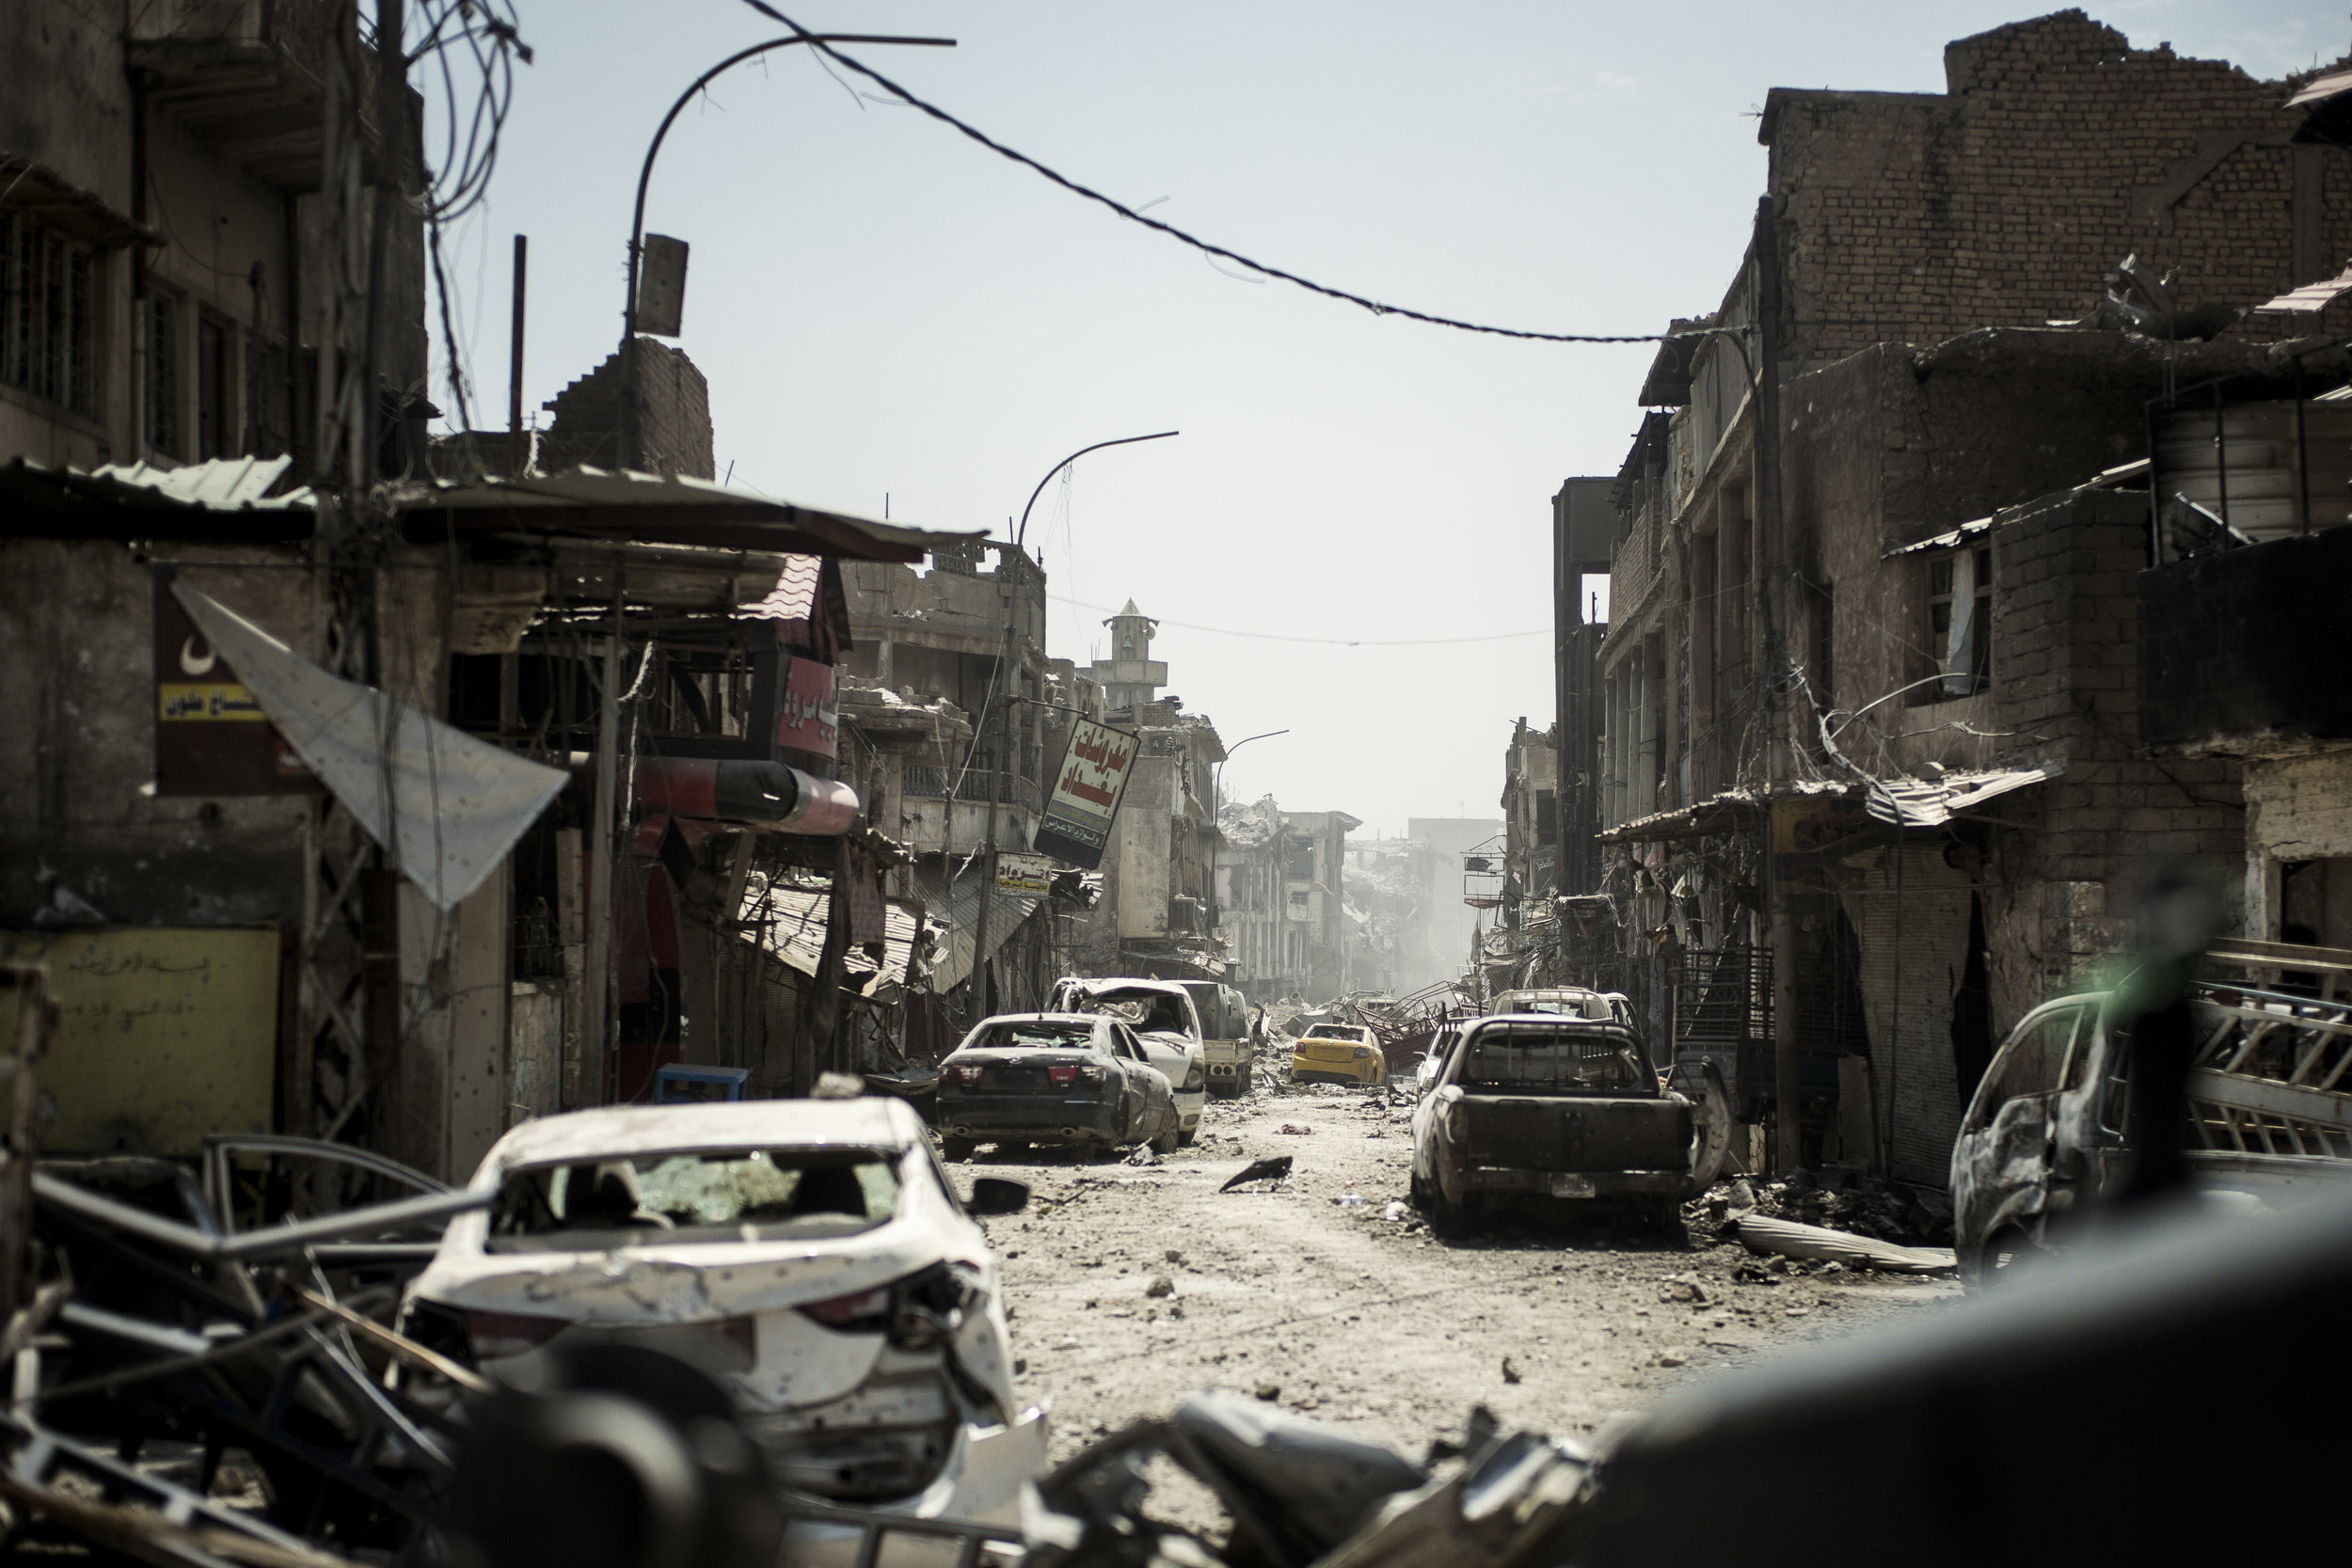 'They're right behind the yellow car', the soldier says while pointing down the street. 120 meters away ISIS and special forces units exchanges fire. The ISIS occupation of Mosul has almost reached it's end. A few hours earlier Golden Division retook the Al-Nuri Mosque, where ISIS leader Abu Bakr al-Baghadadi proclaimed the caliphate. Now the Iraqi forces are fighting to retake the last occupied areas of the city.